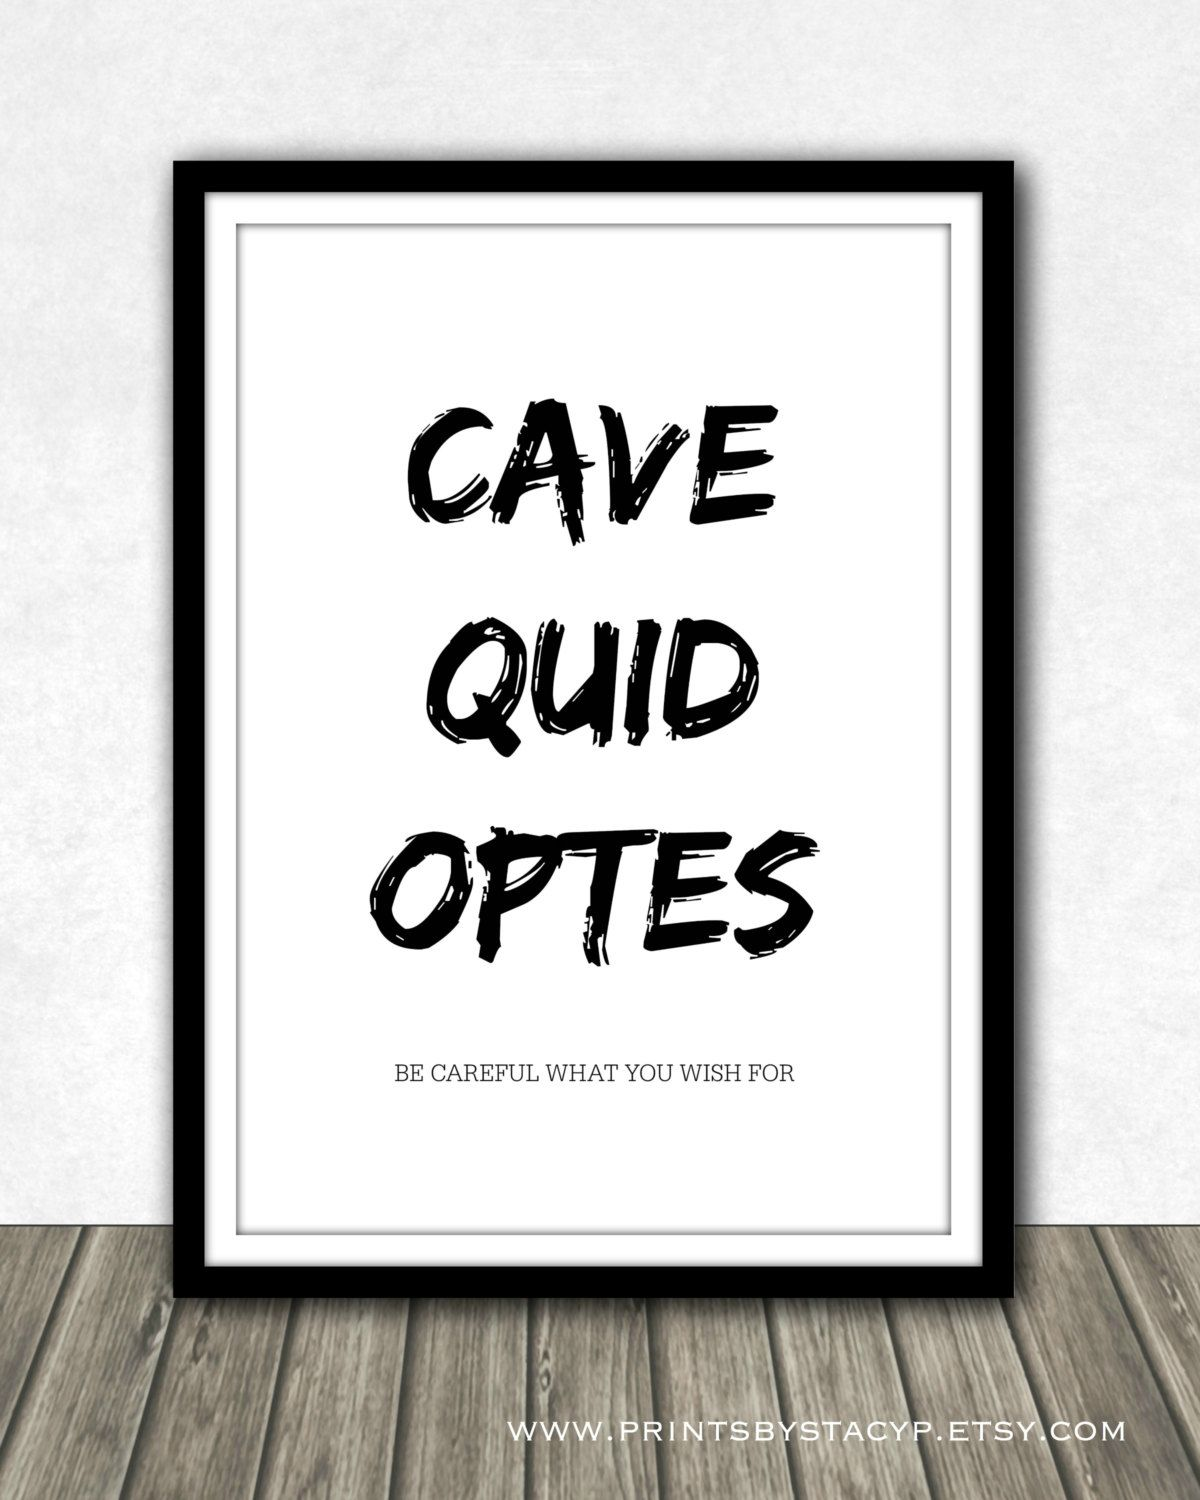 INSTANT DIGITAL DOWNLOAD   Cave Quid Optes   Be Careful What